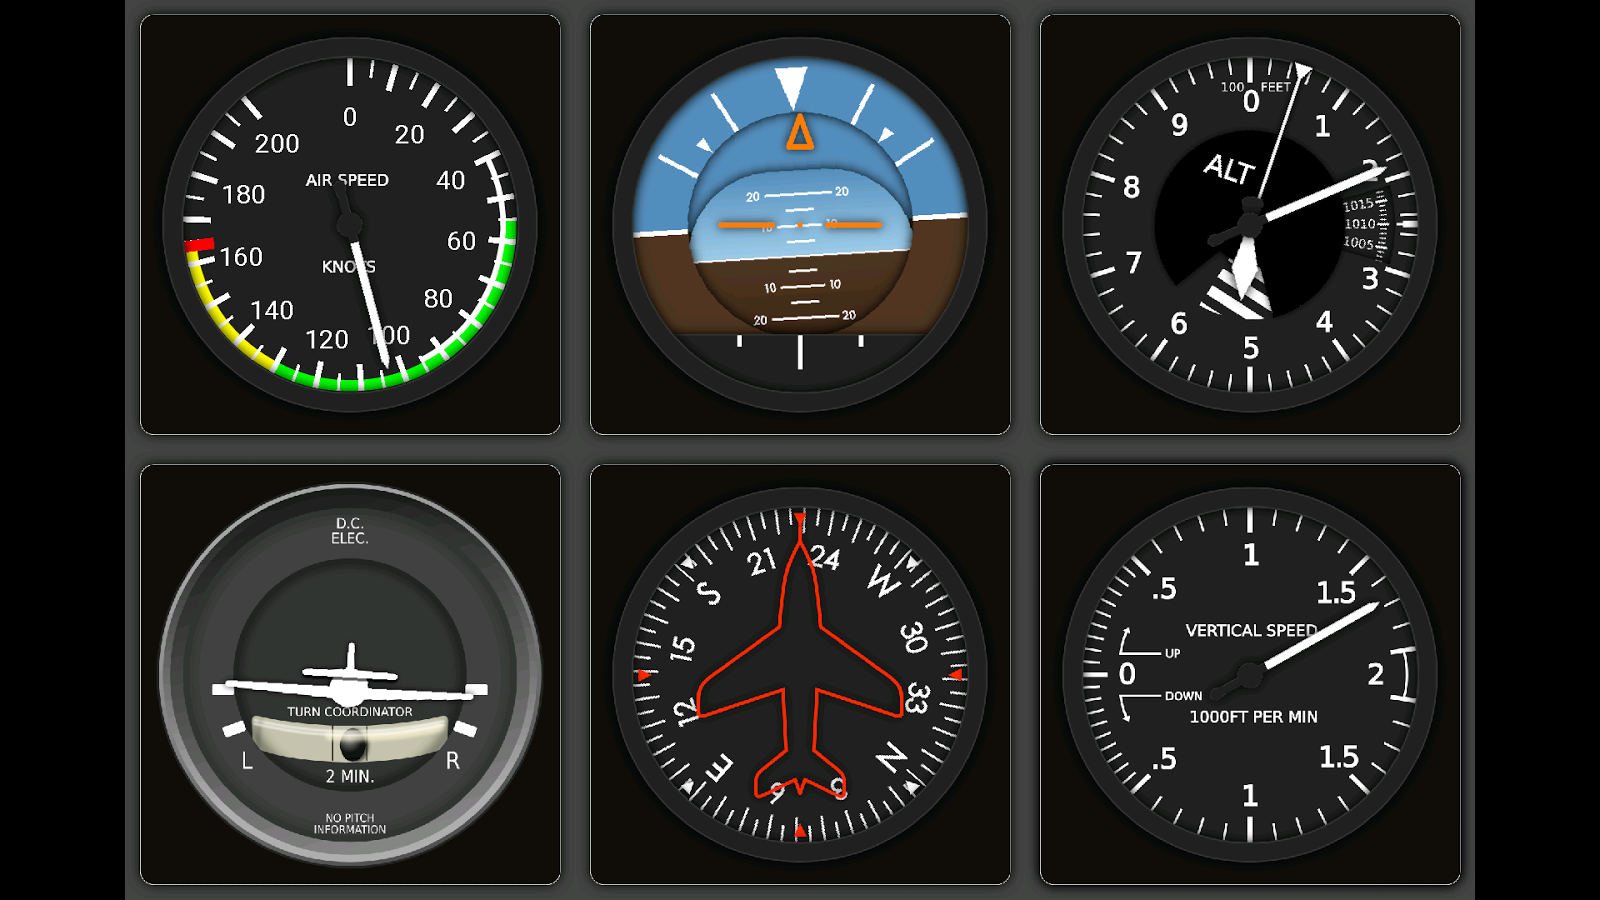 3d Wallpaper Gyro X Plane Steam Gauges Pro Android Apps On Google Play